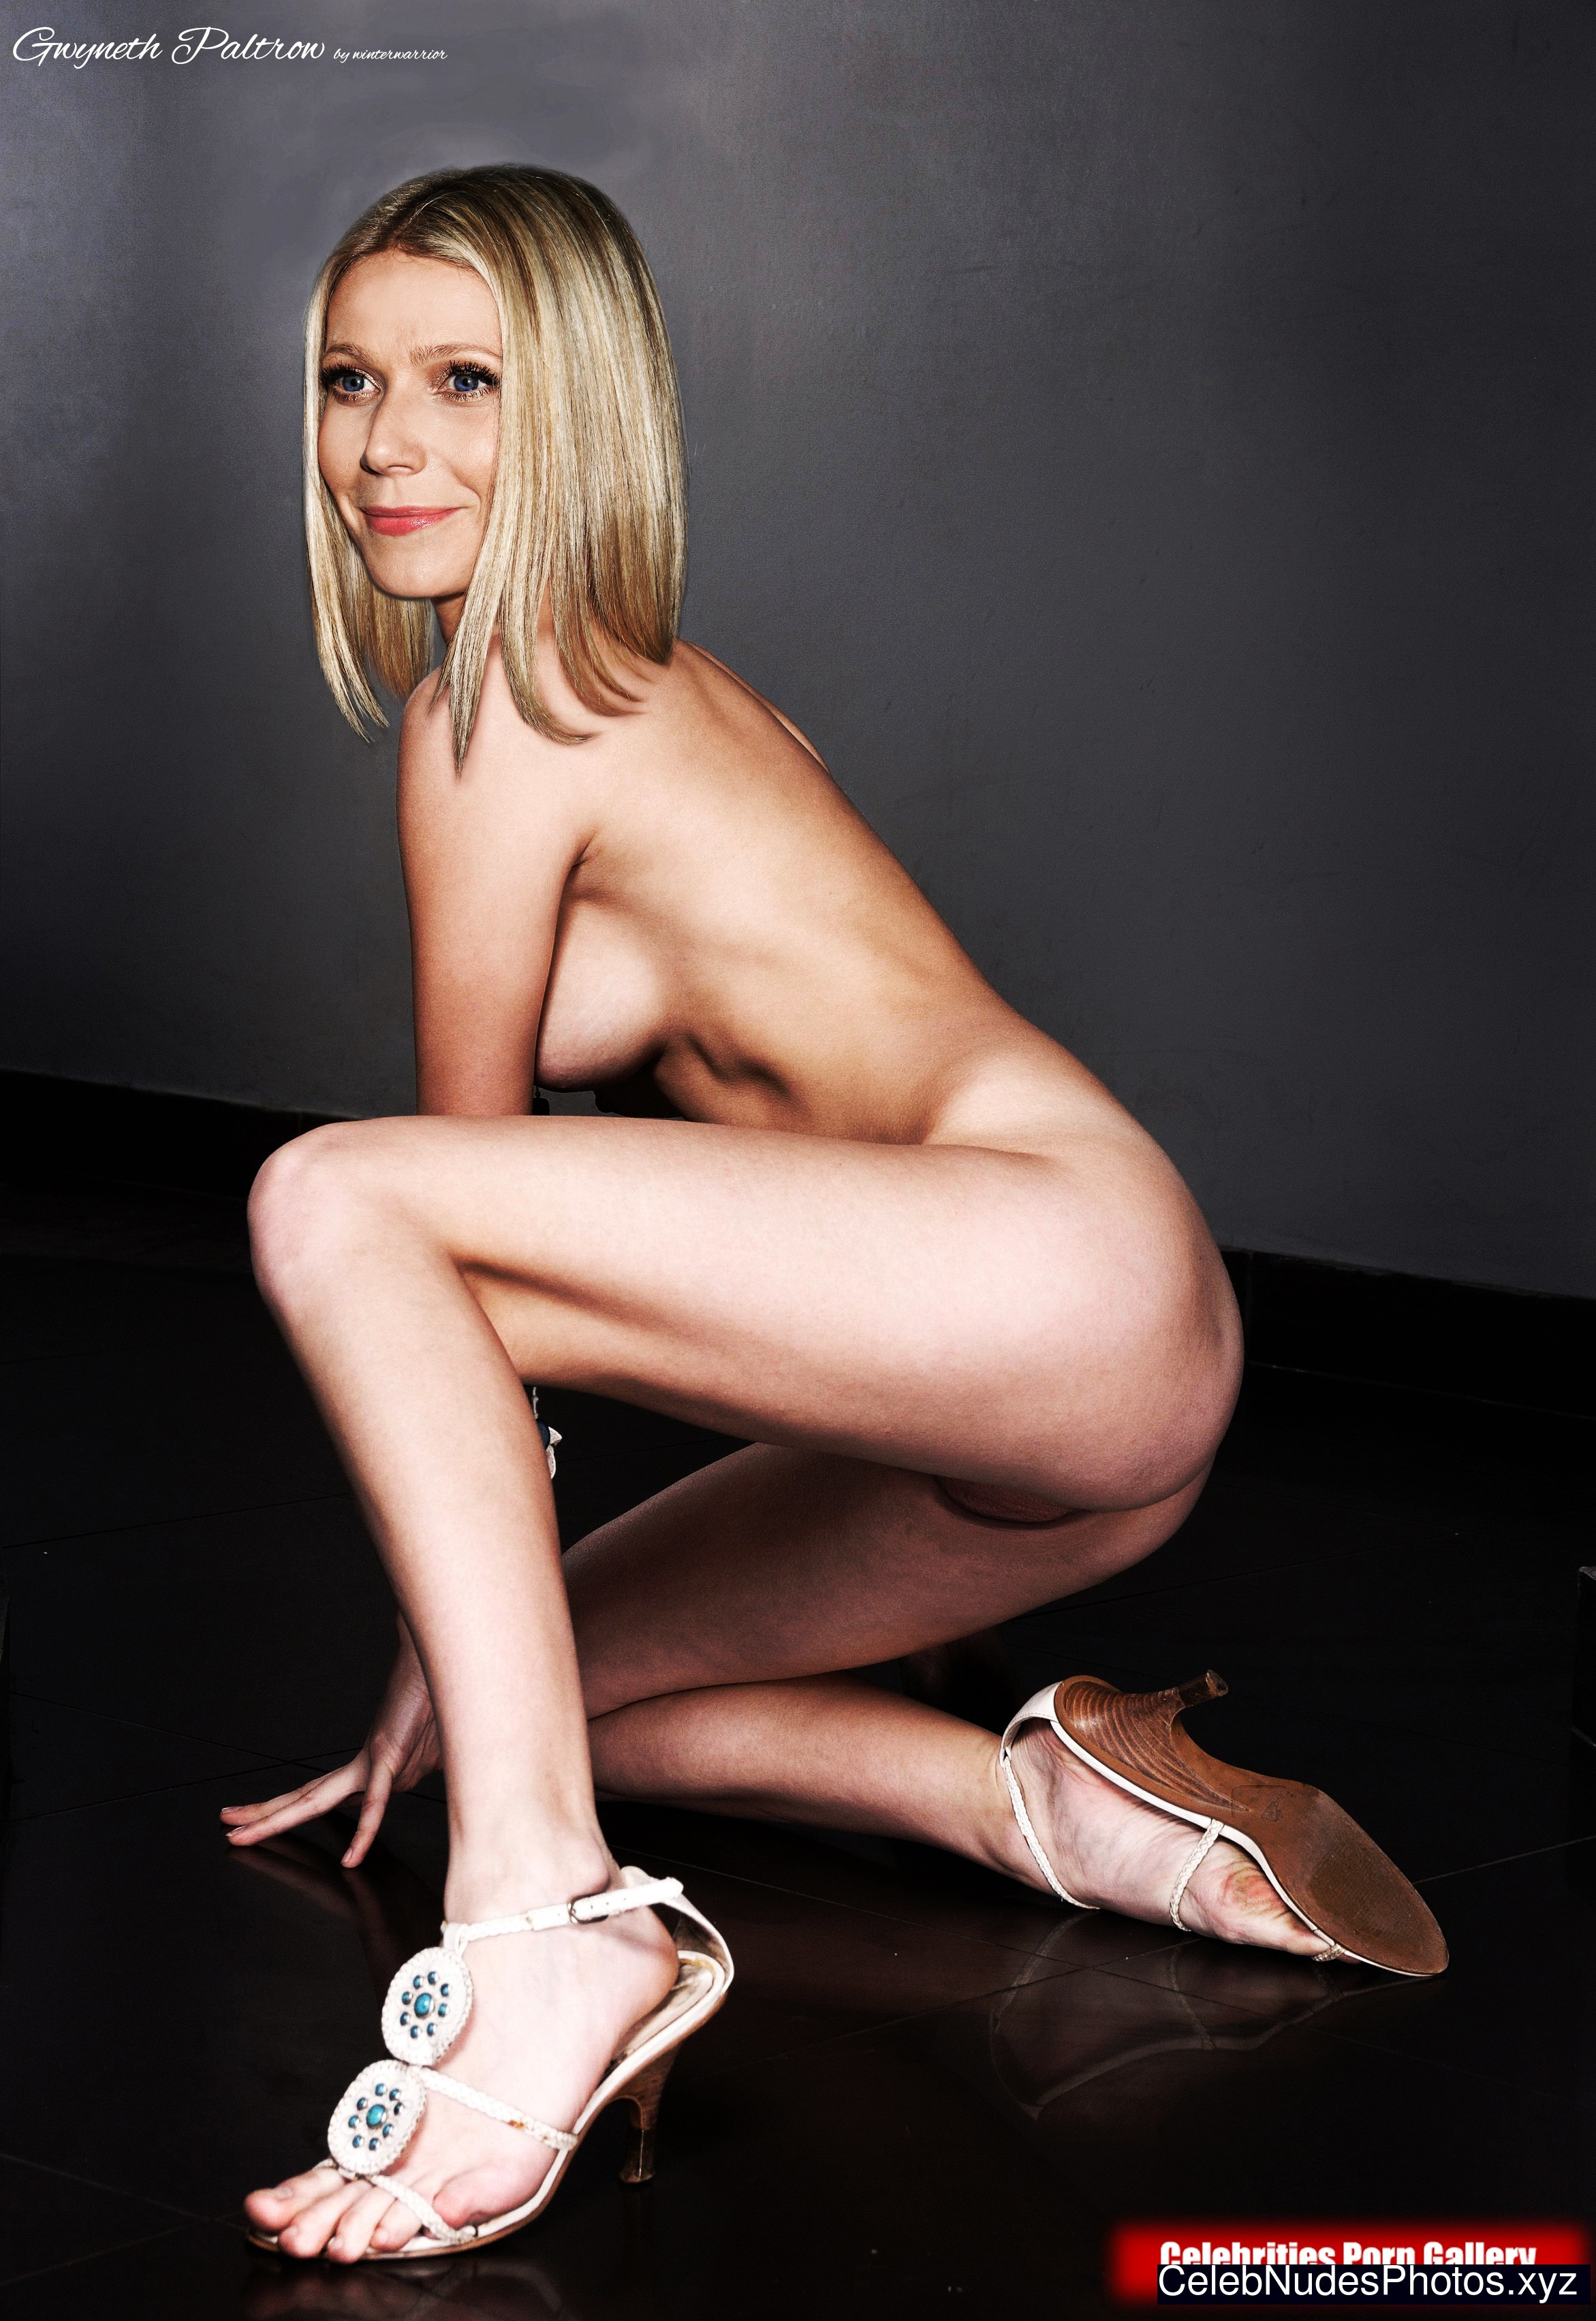 gwyneth paltrow naked fales